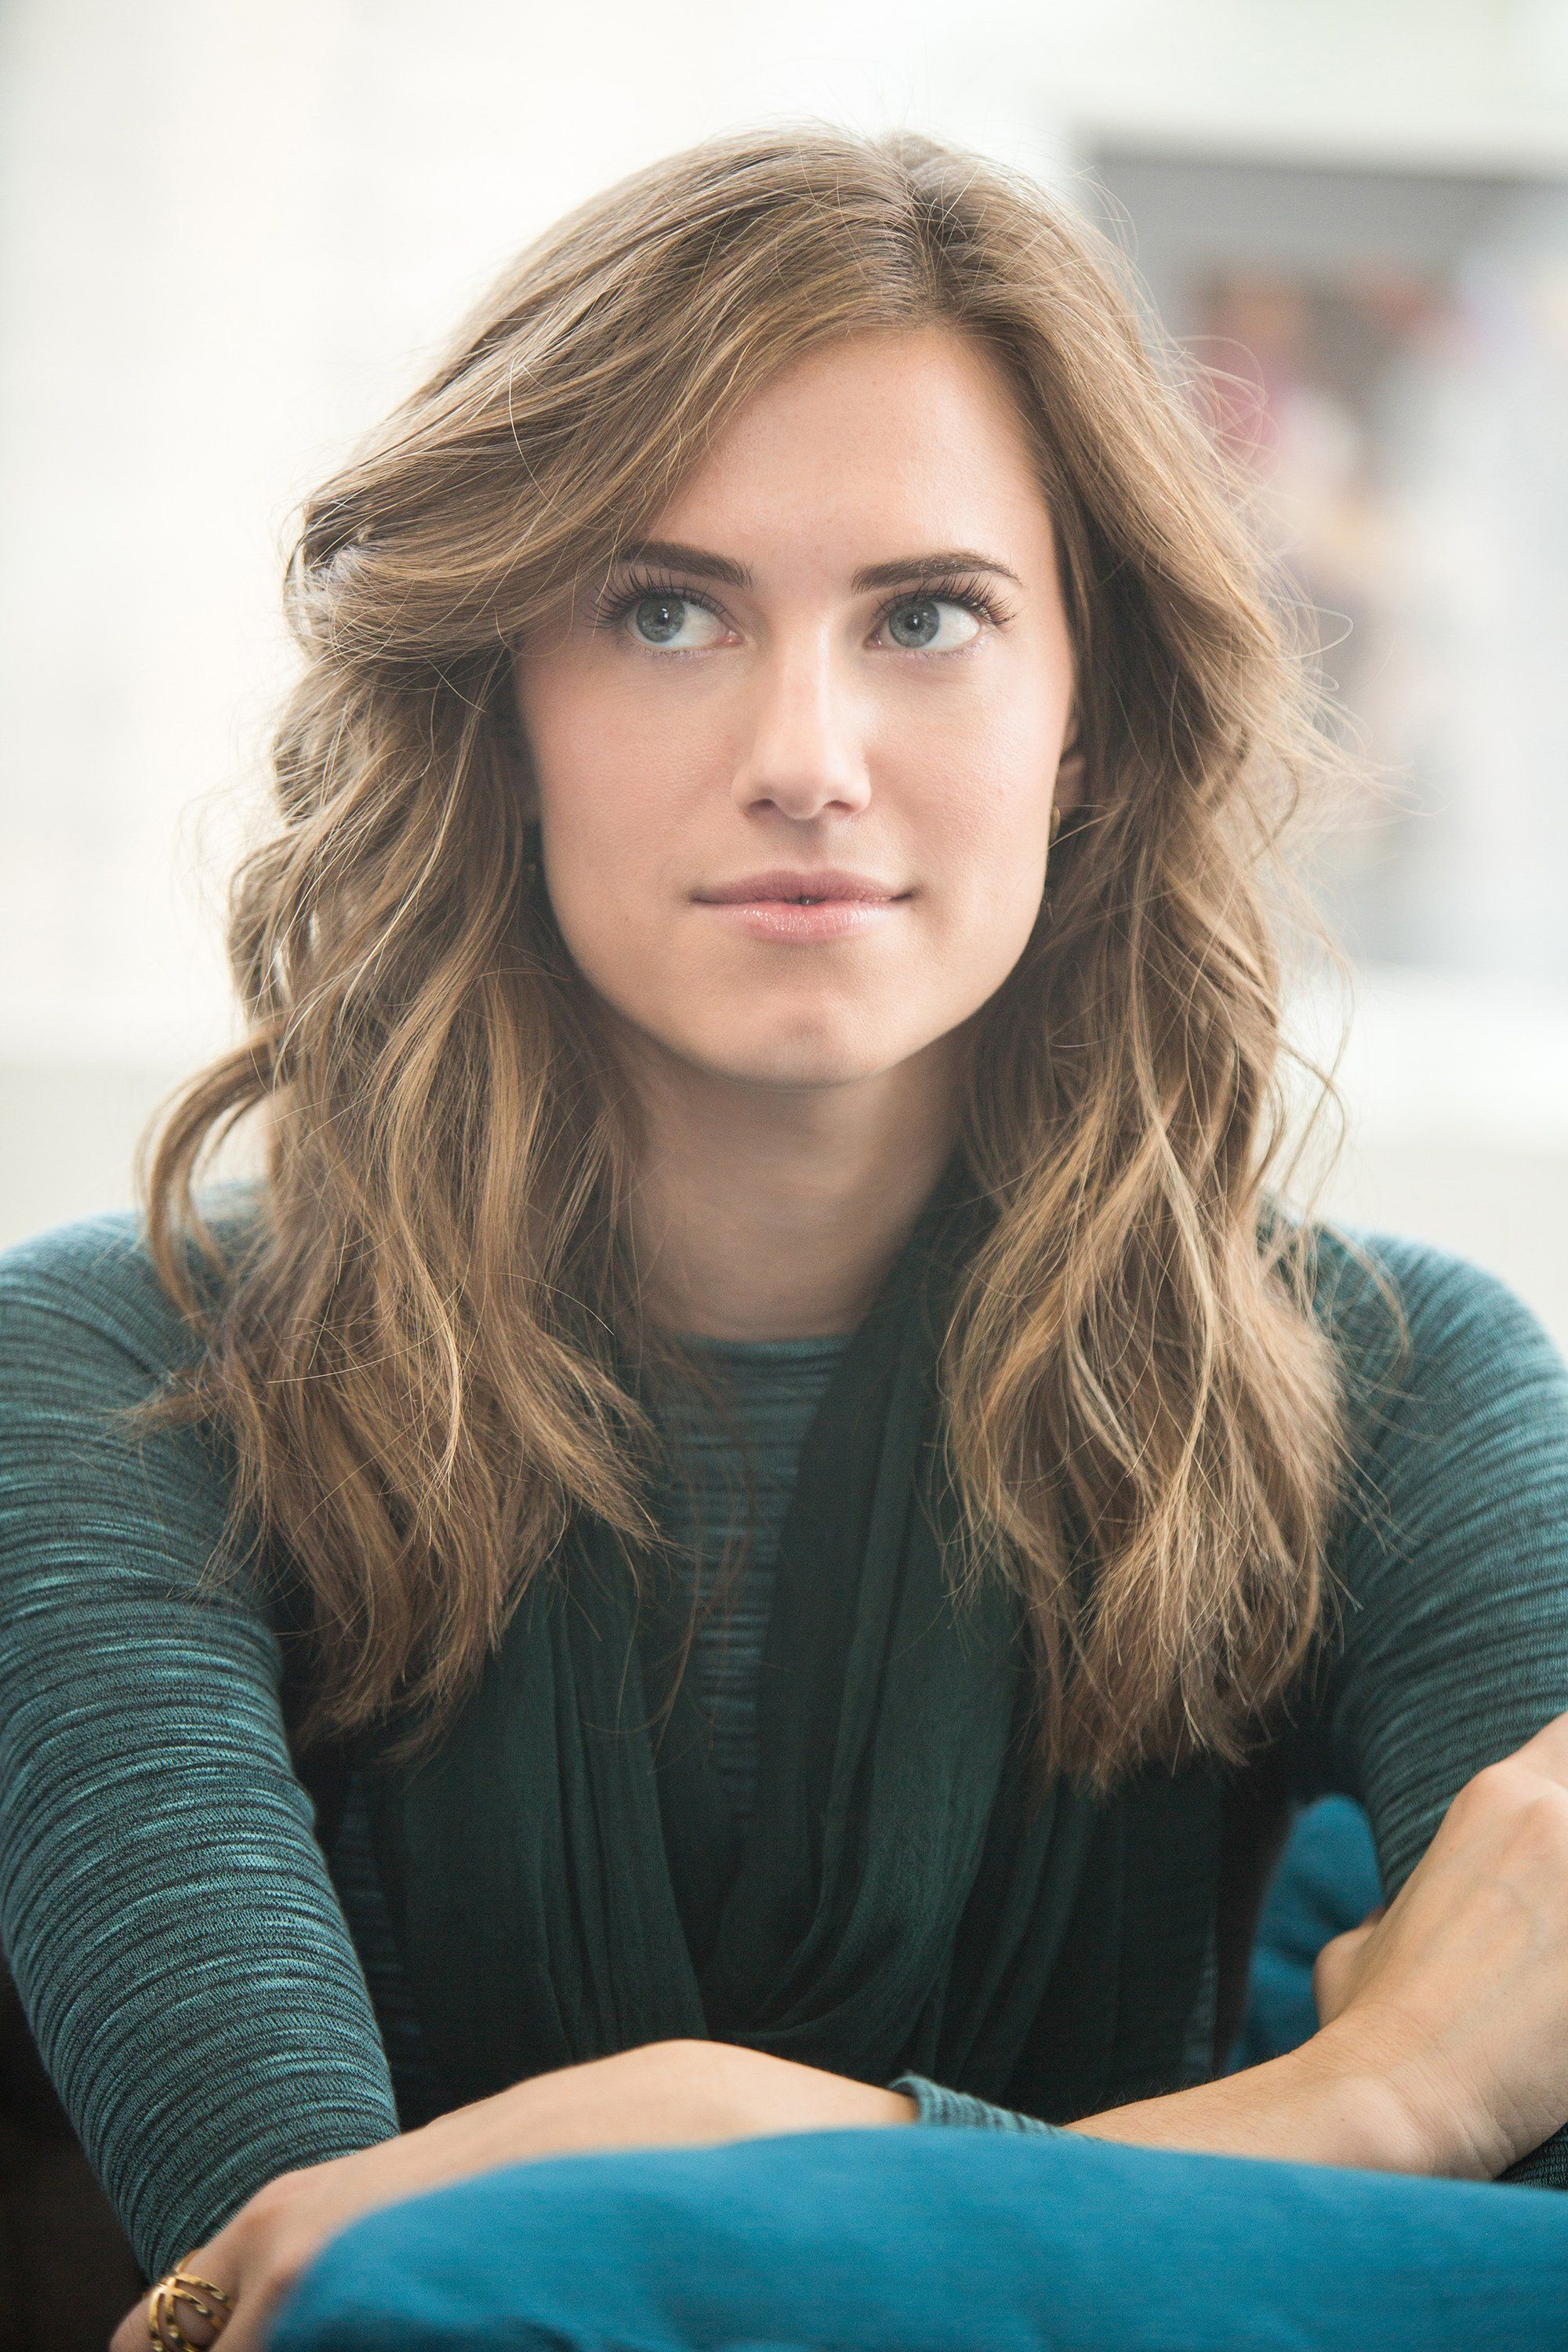 Allison williams images 14